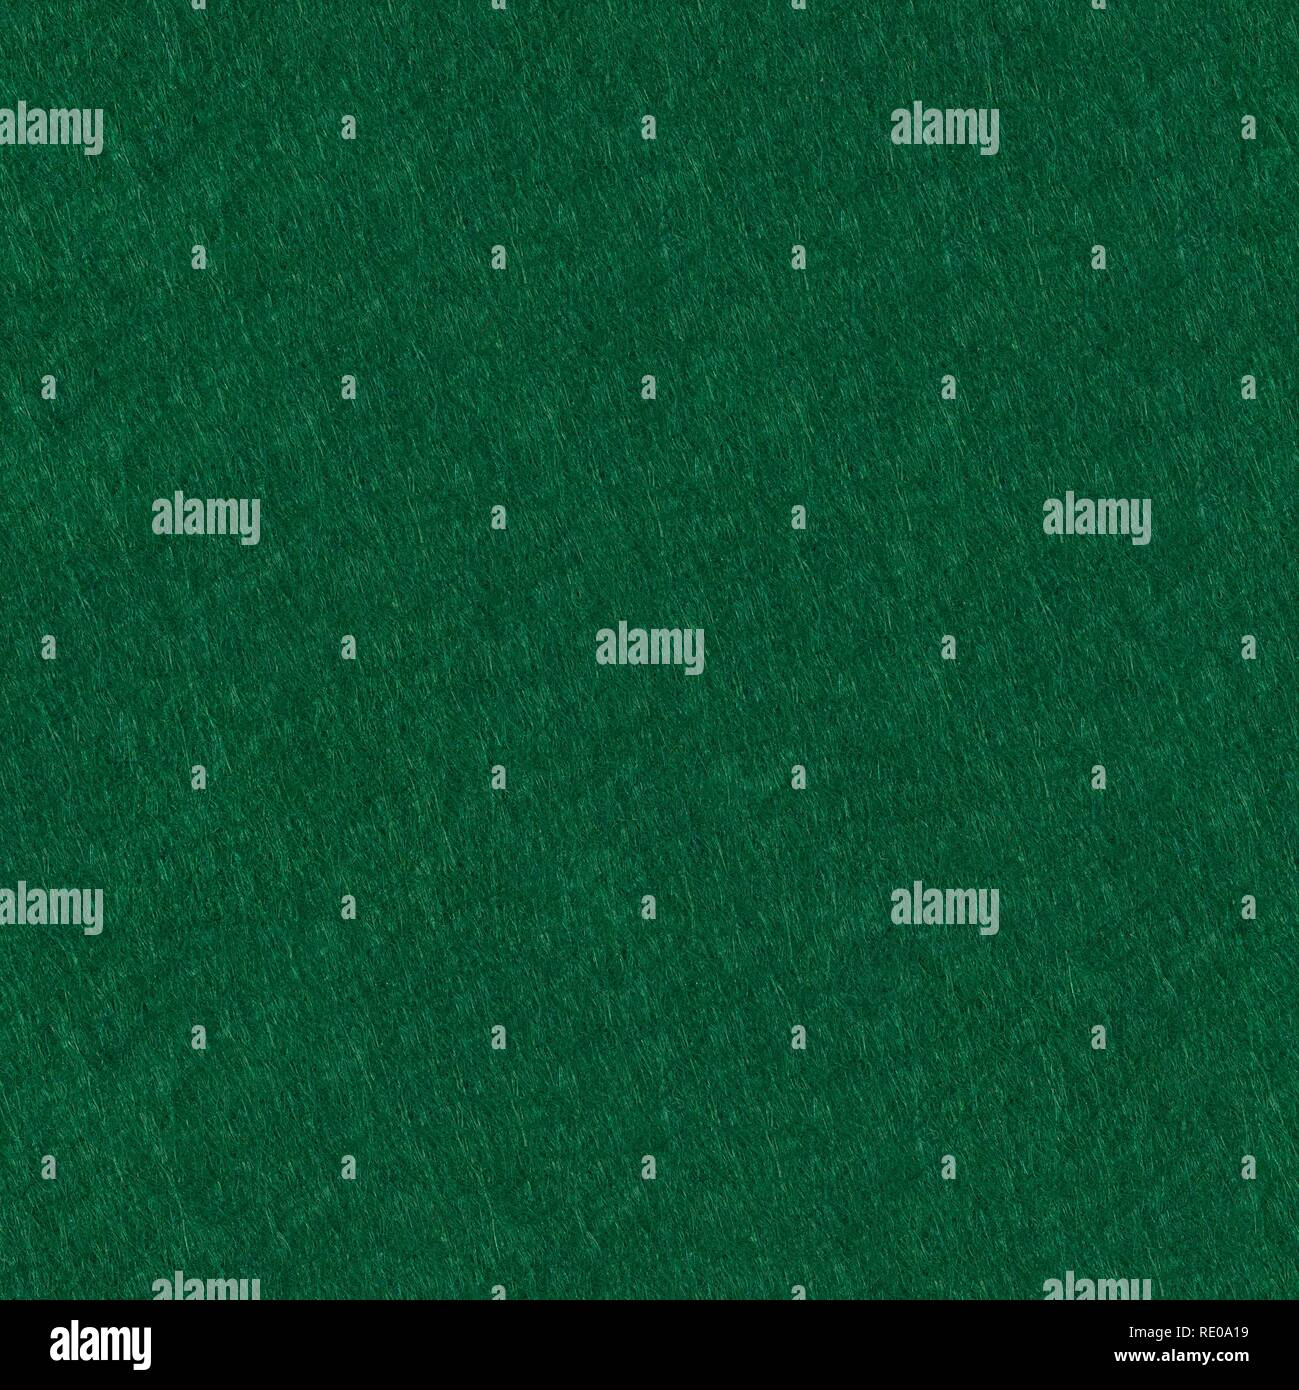 Poker table felt background in green color. Seamless square texture, tile ready. - Stock Image